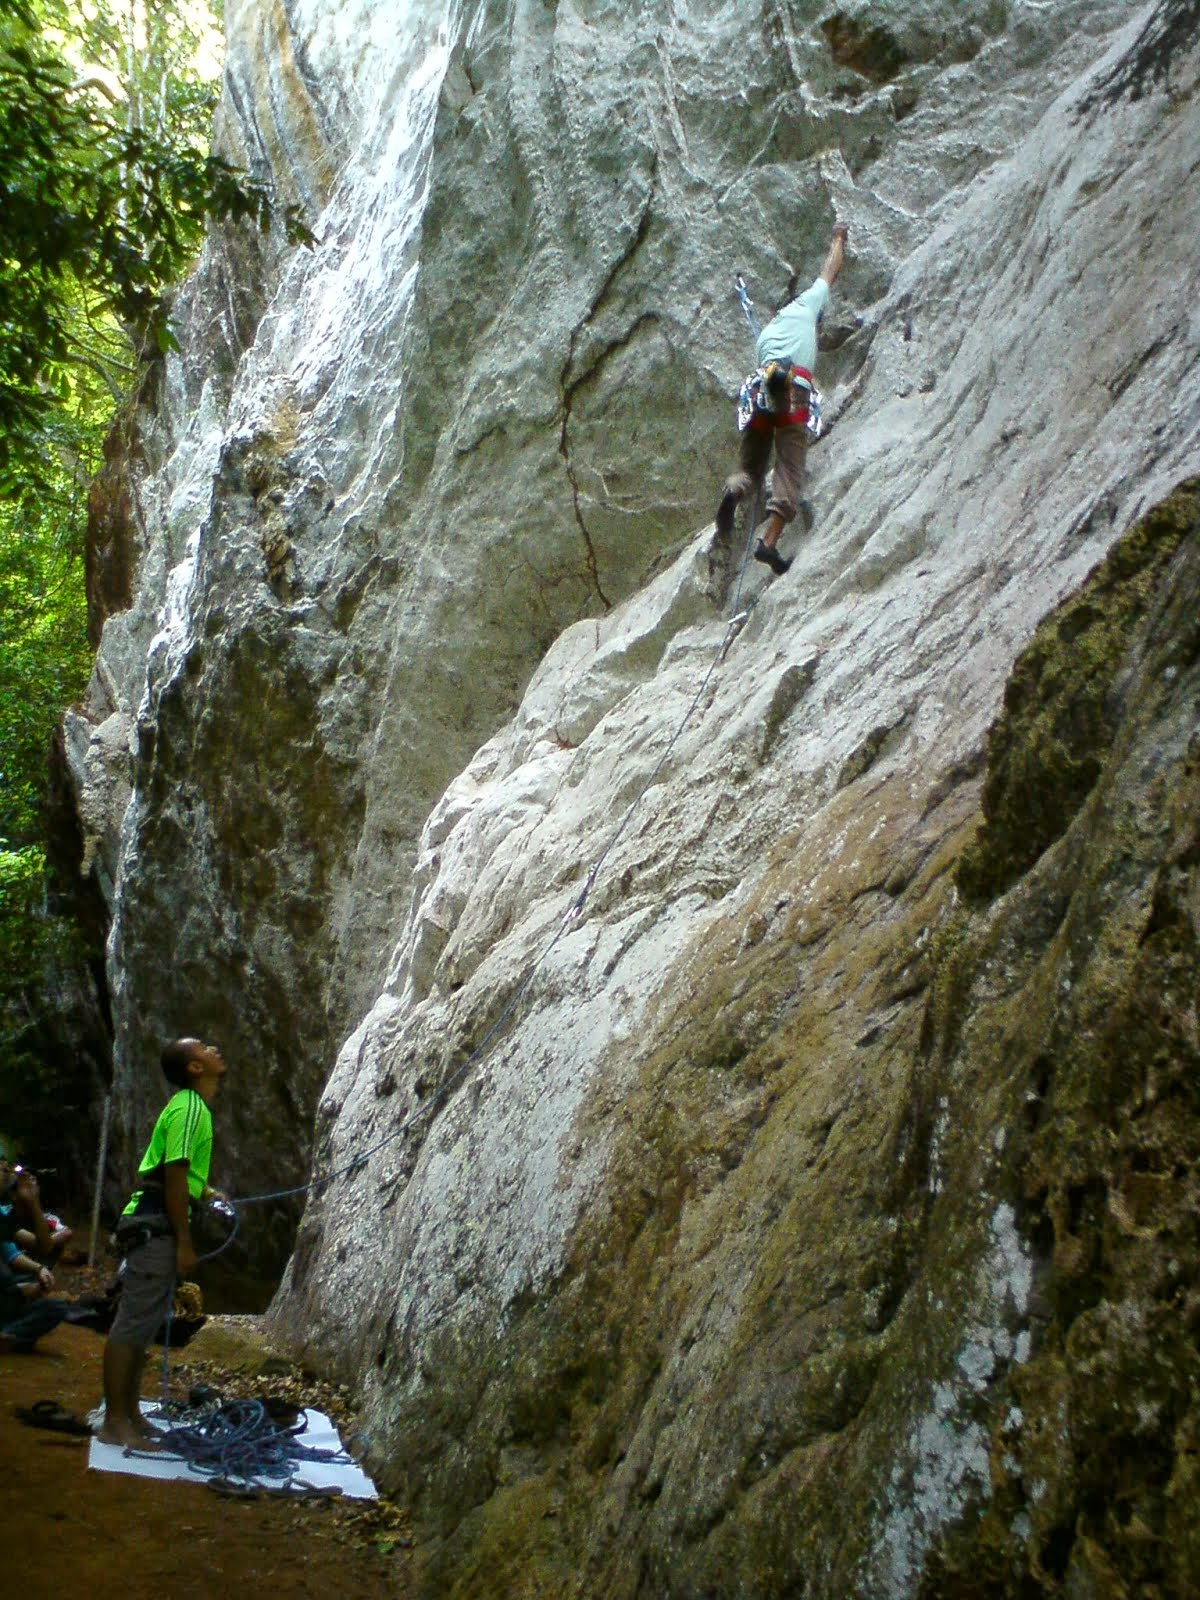 Rock Climb in gua kelam Rainforest PERLIS STATE